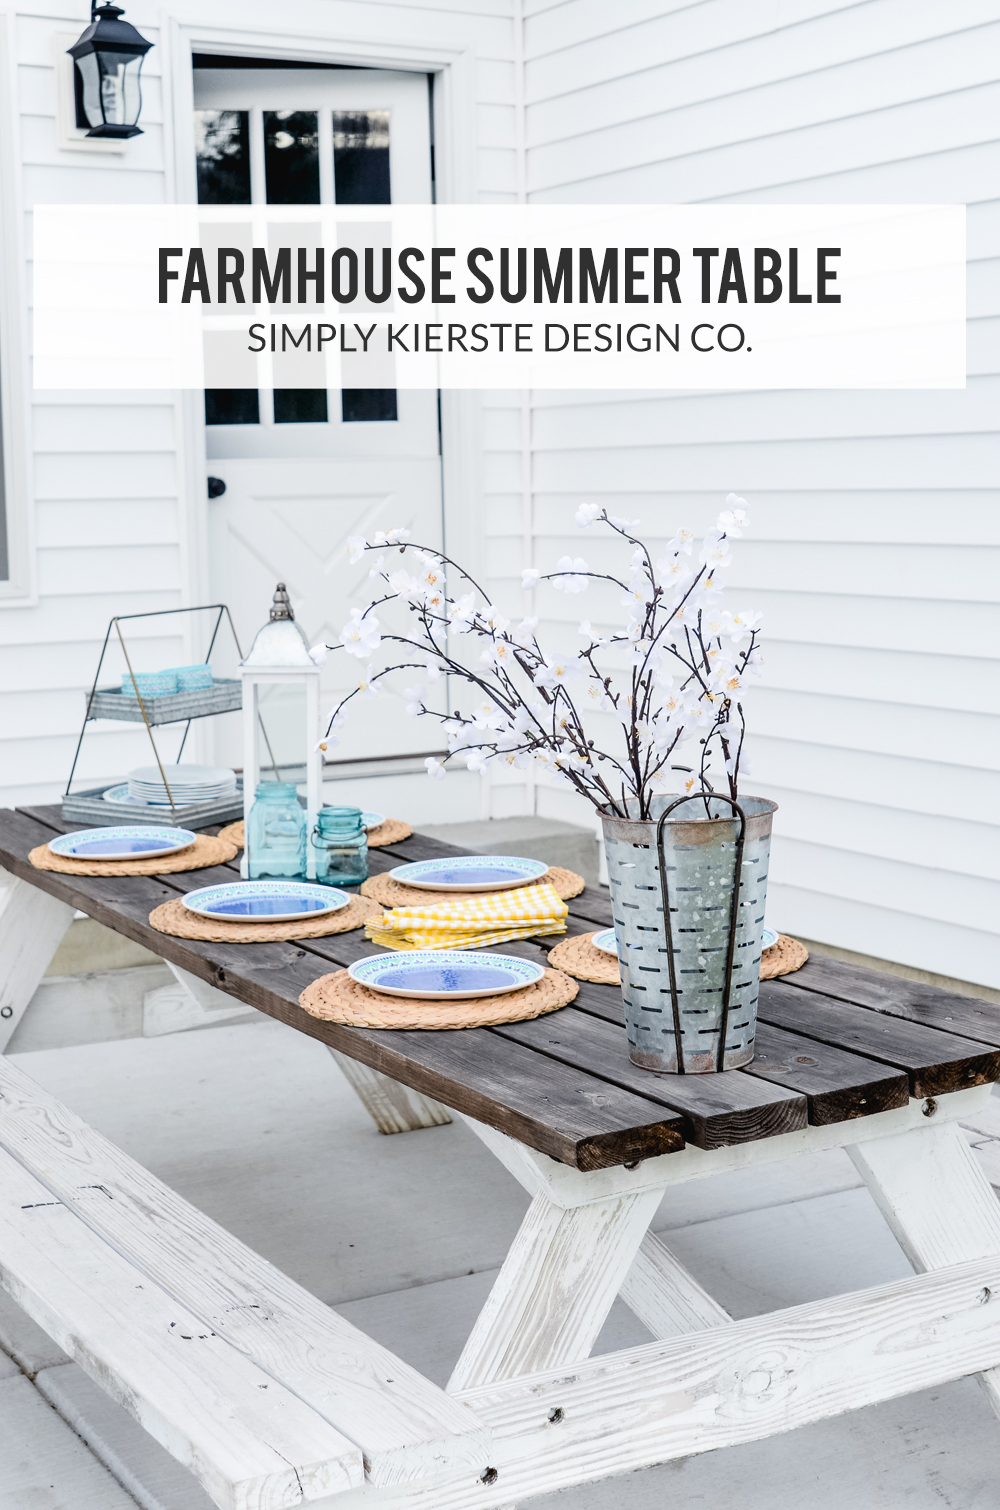 farmhouse summer table | oldsaltfarm.com